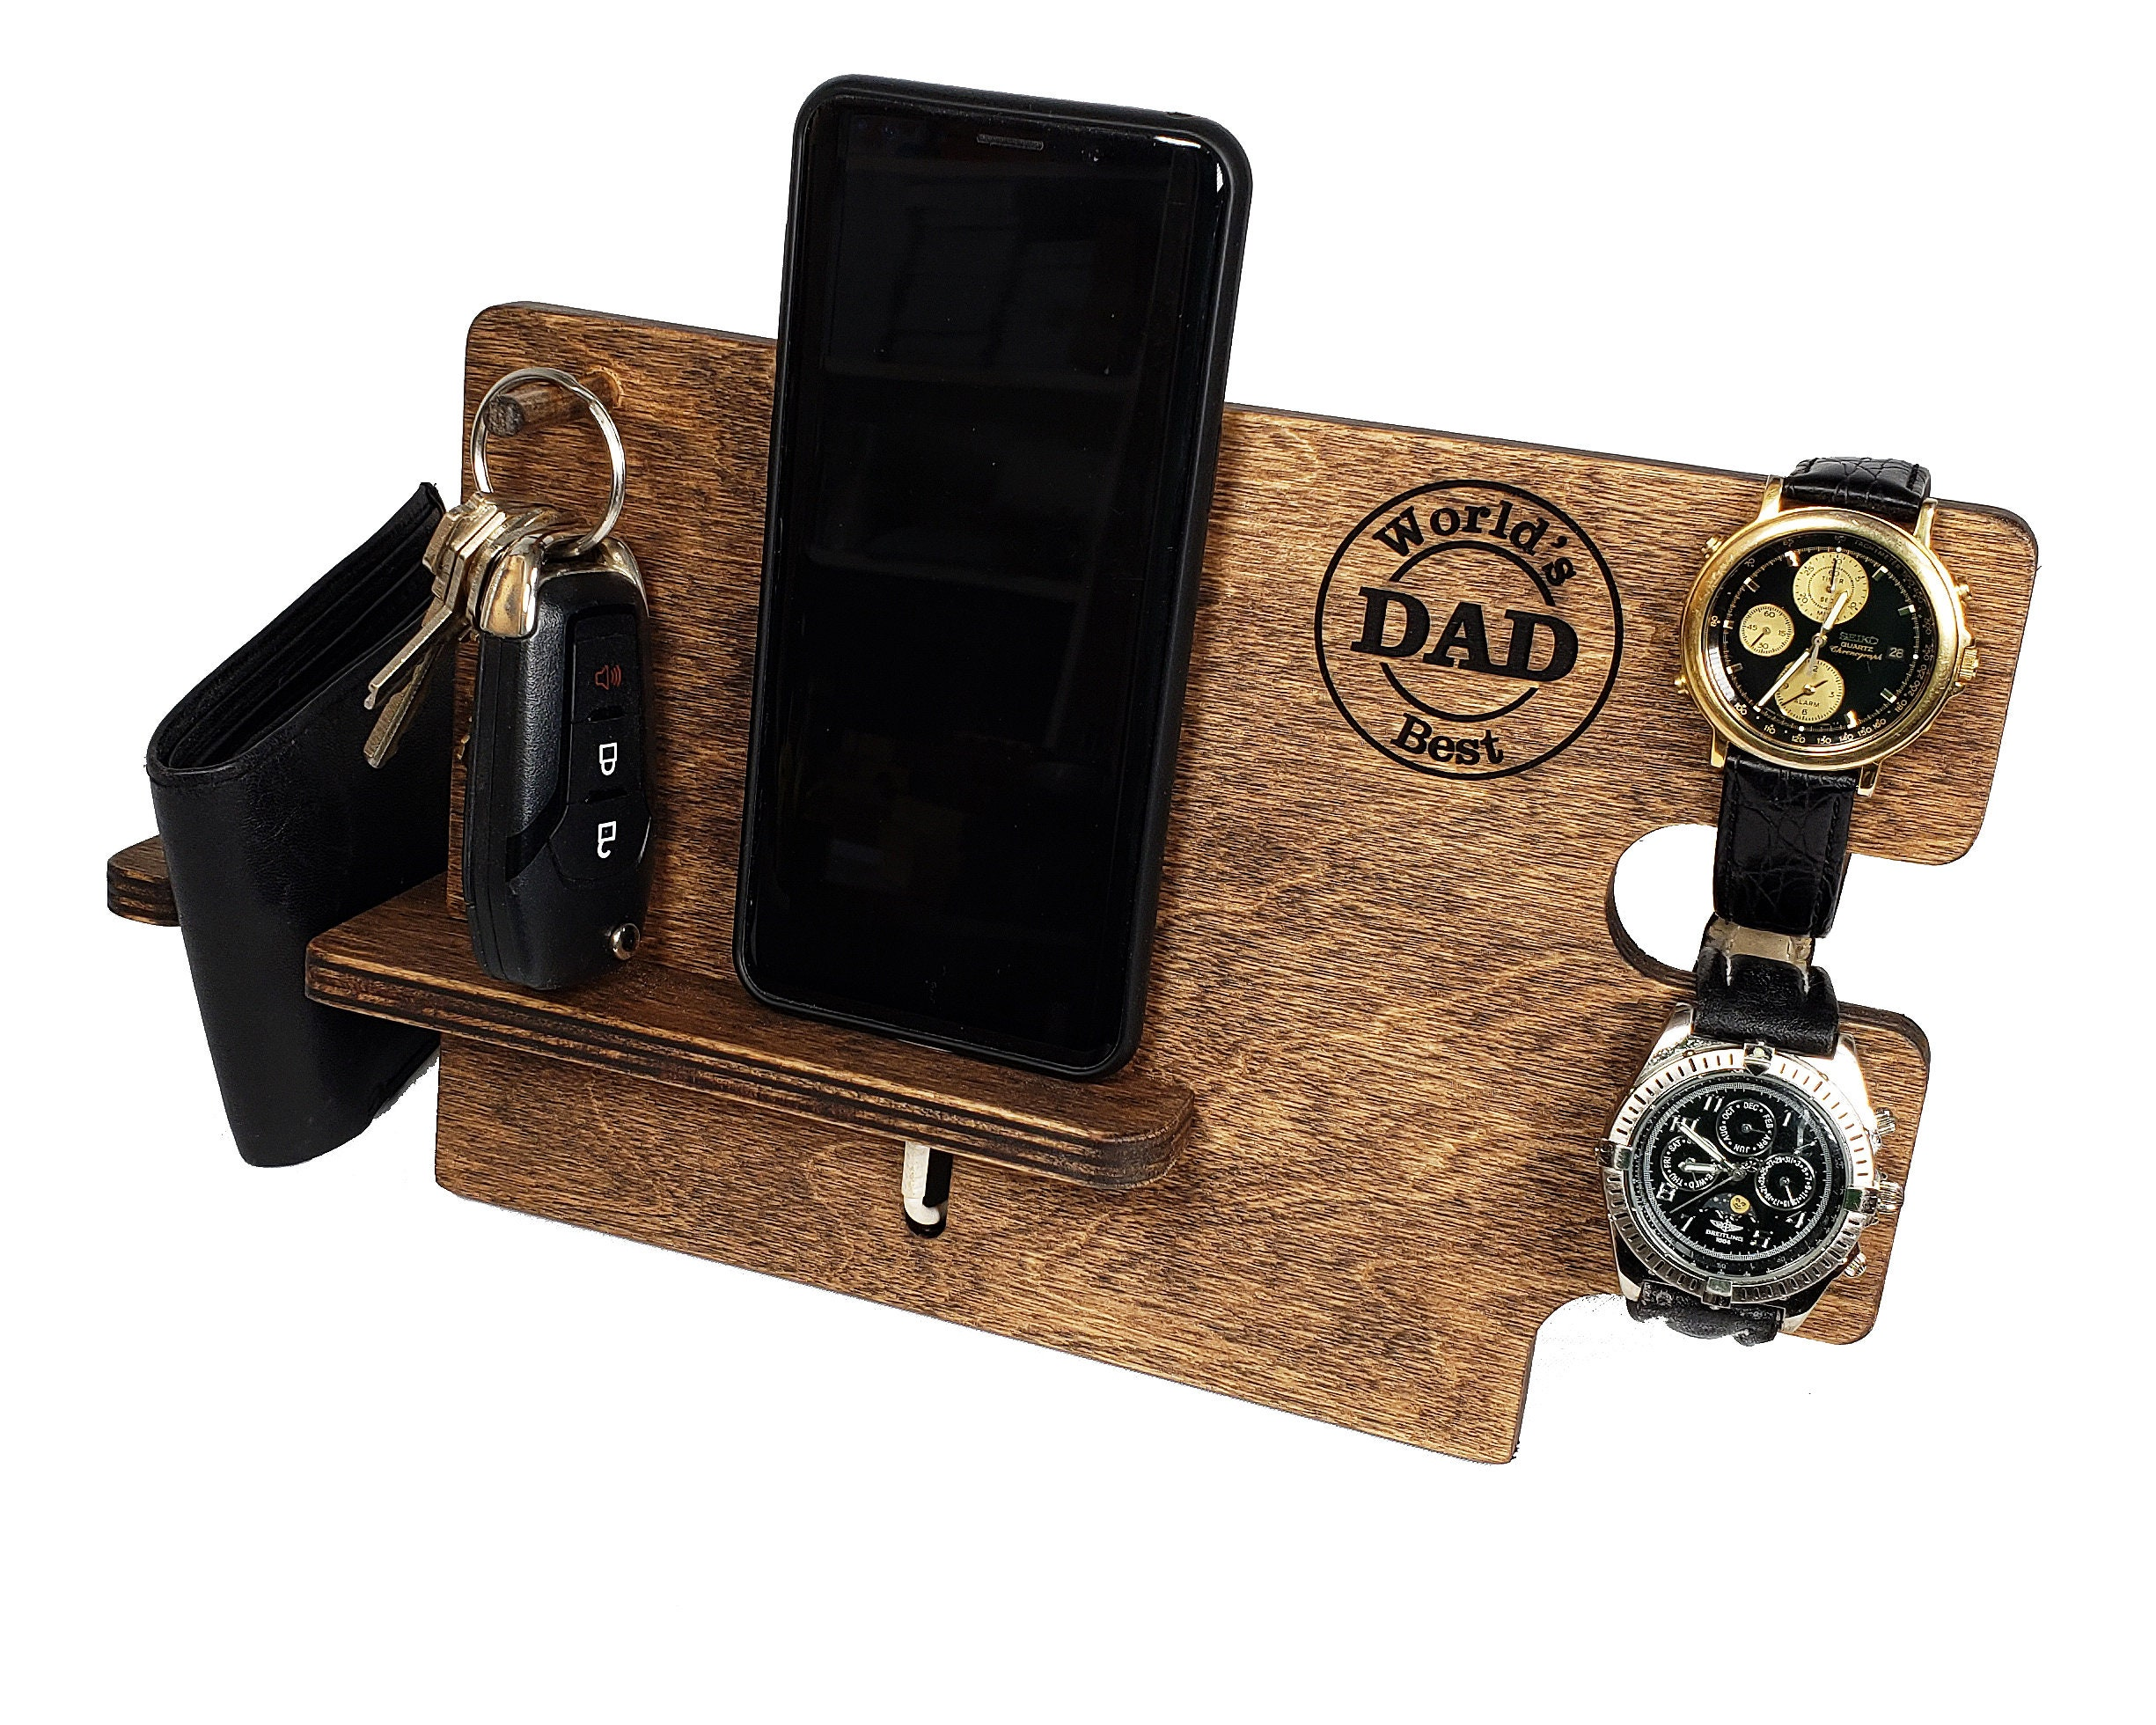 Docking Station For Men Wood Nightstand Organizer Fathers Day Gift Desk Organizer Phone Stand Charging Station Watch Stand